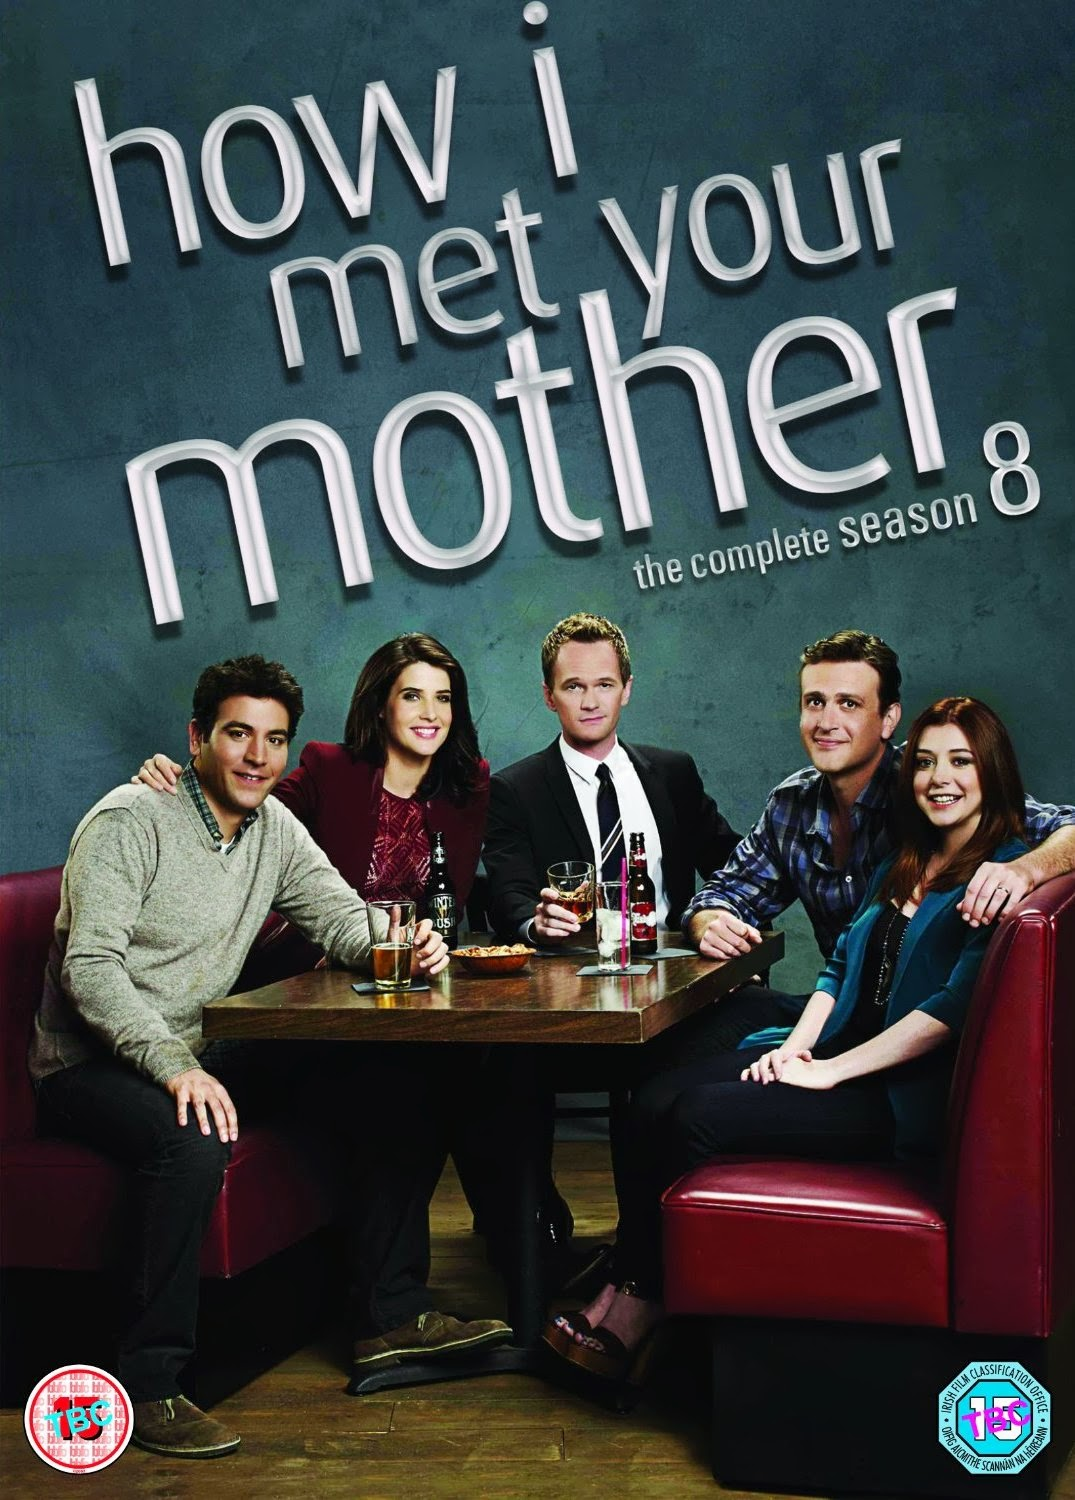 how i met your mother season 8 download full episodes in hd 720p